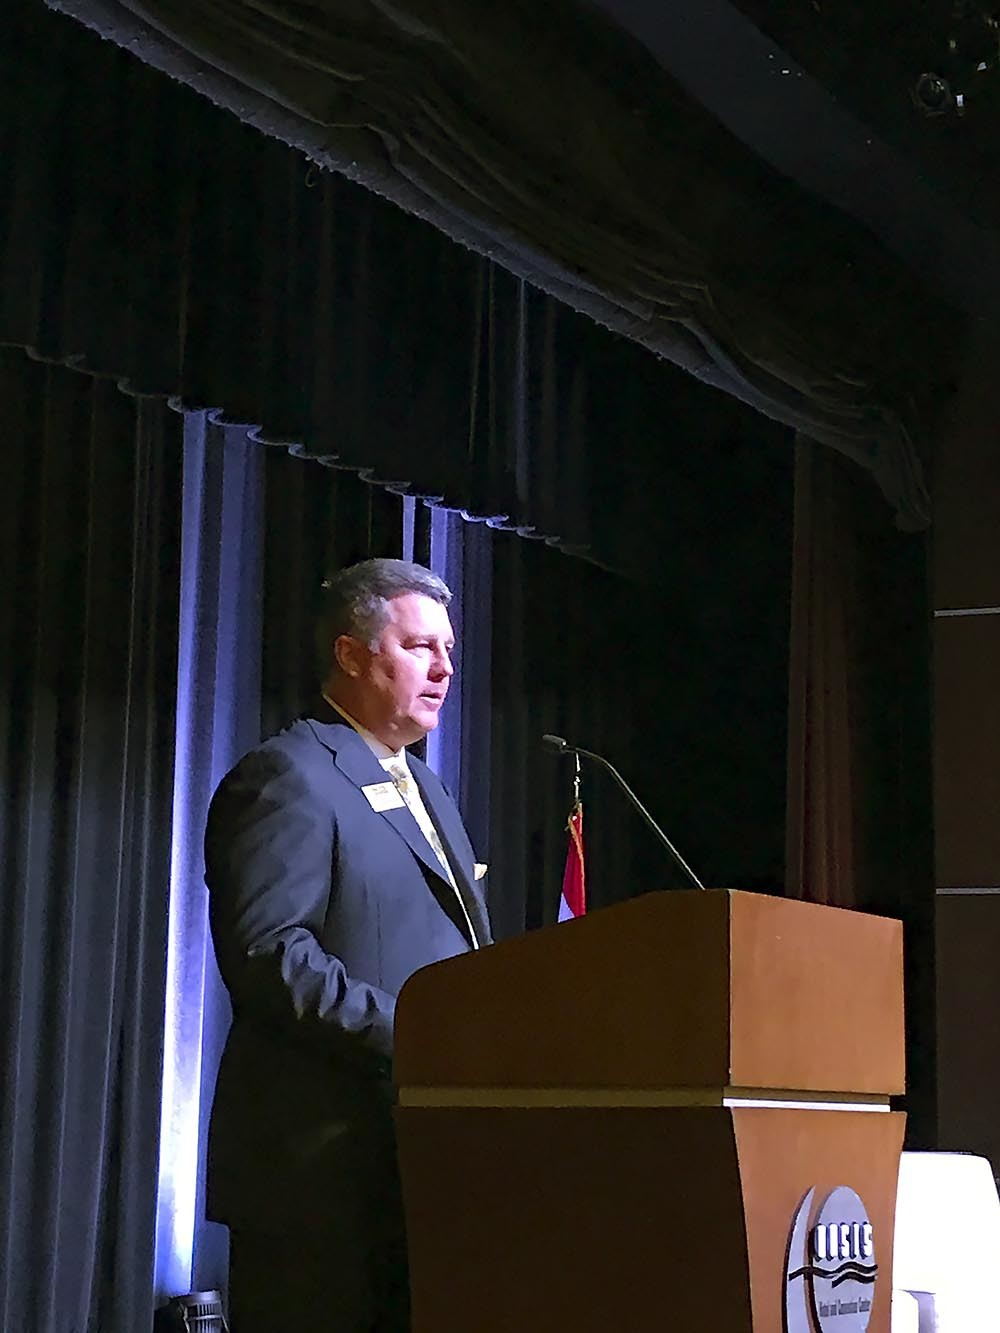 Roughly 450 people attended Springfield Area Chamber of Commerce's annual Membership Luncheon on Aug. 9 at Oasis Hotel & Convention Center. Above, Chairman John Wanamaker welcomes the sold-out crowd.